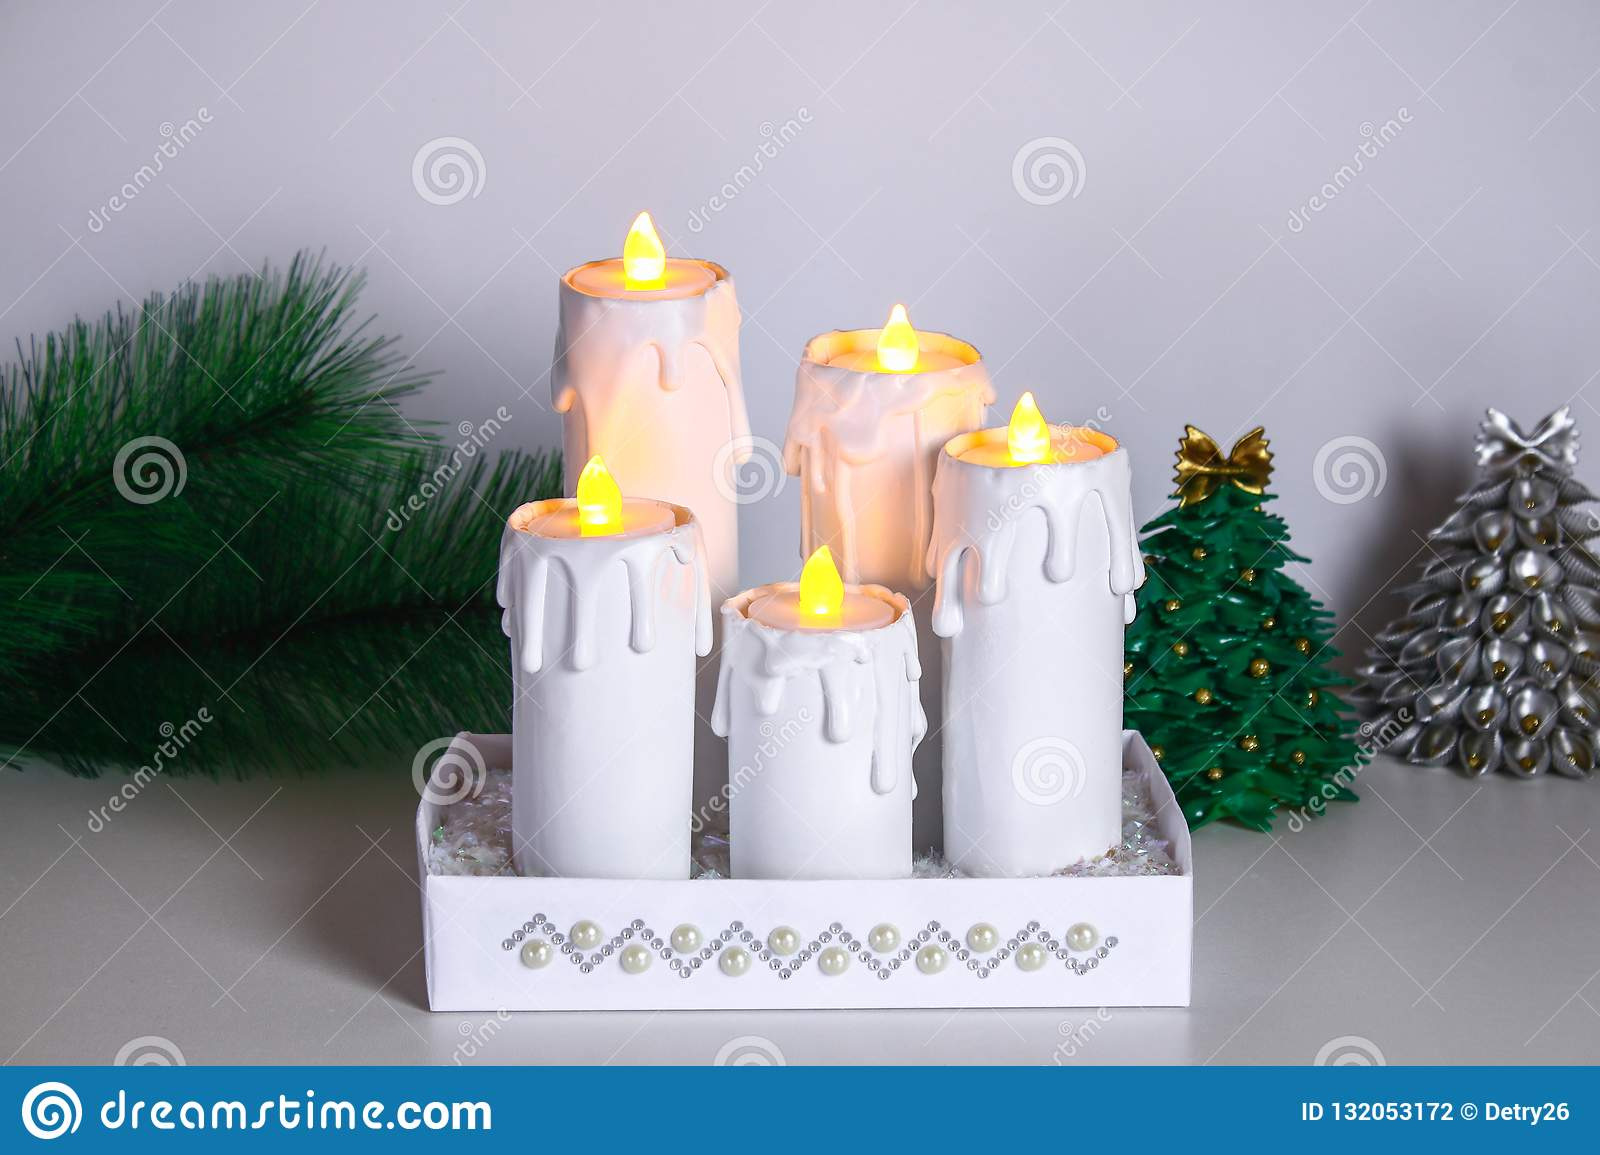 Como Hacer Christmas Con Fotos.How To Make White Christmas Candles Plugs Toilet Paper Rolls